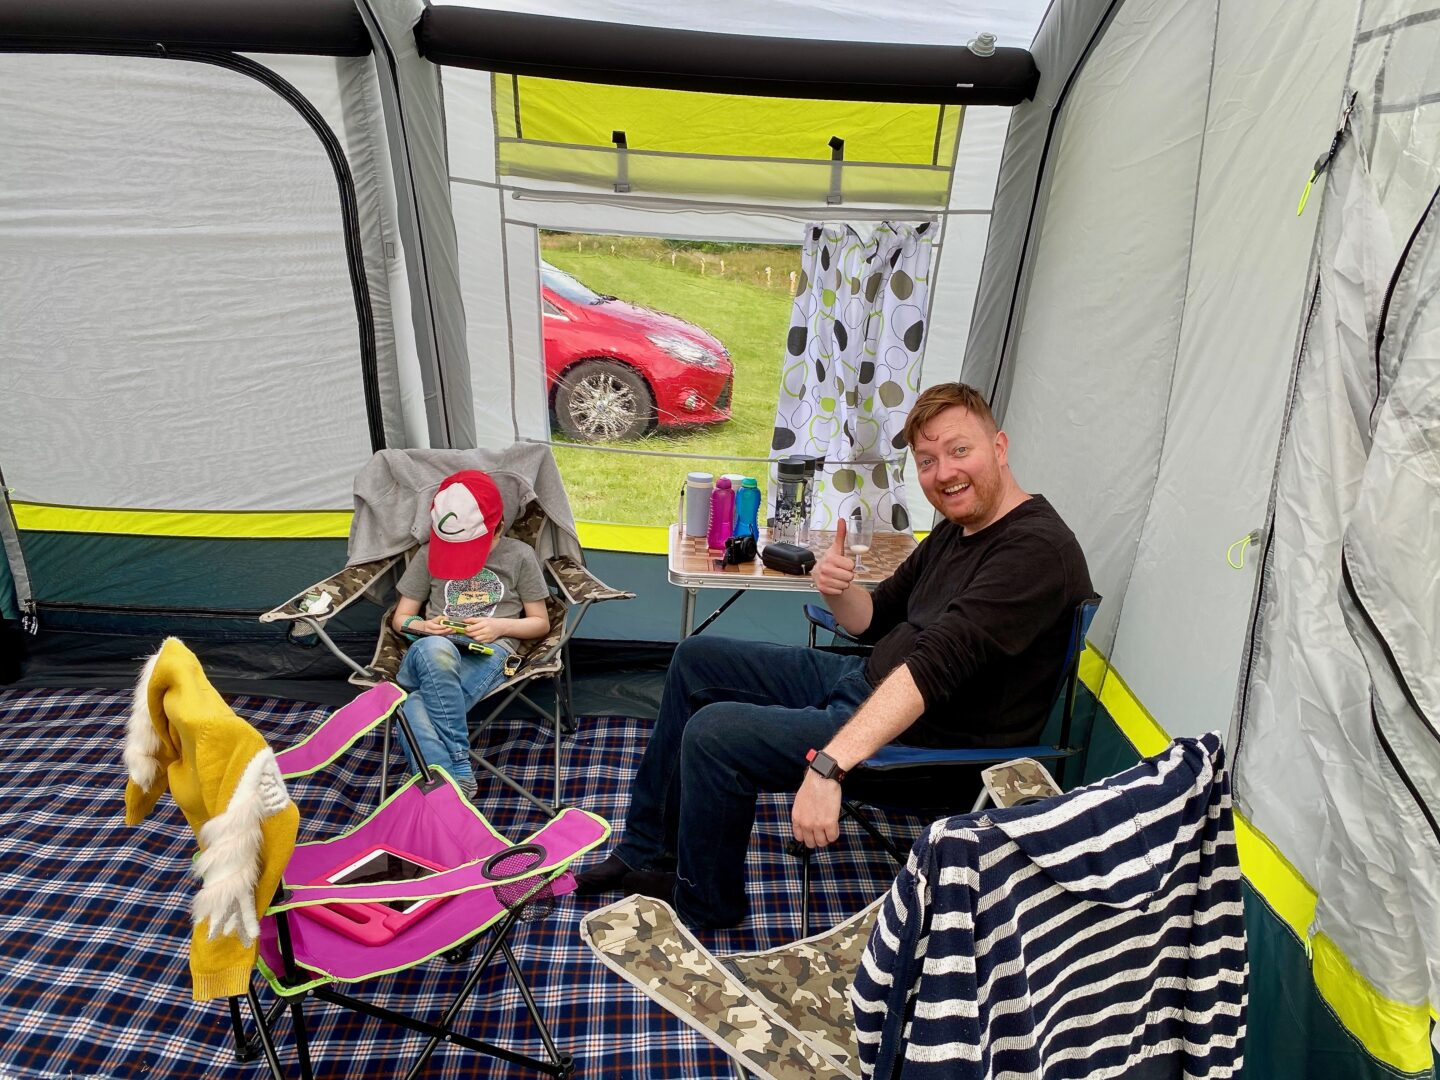 A father and son relaxing in the OLPRO Home tent